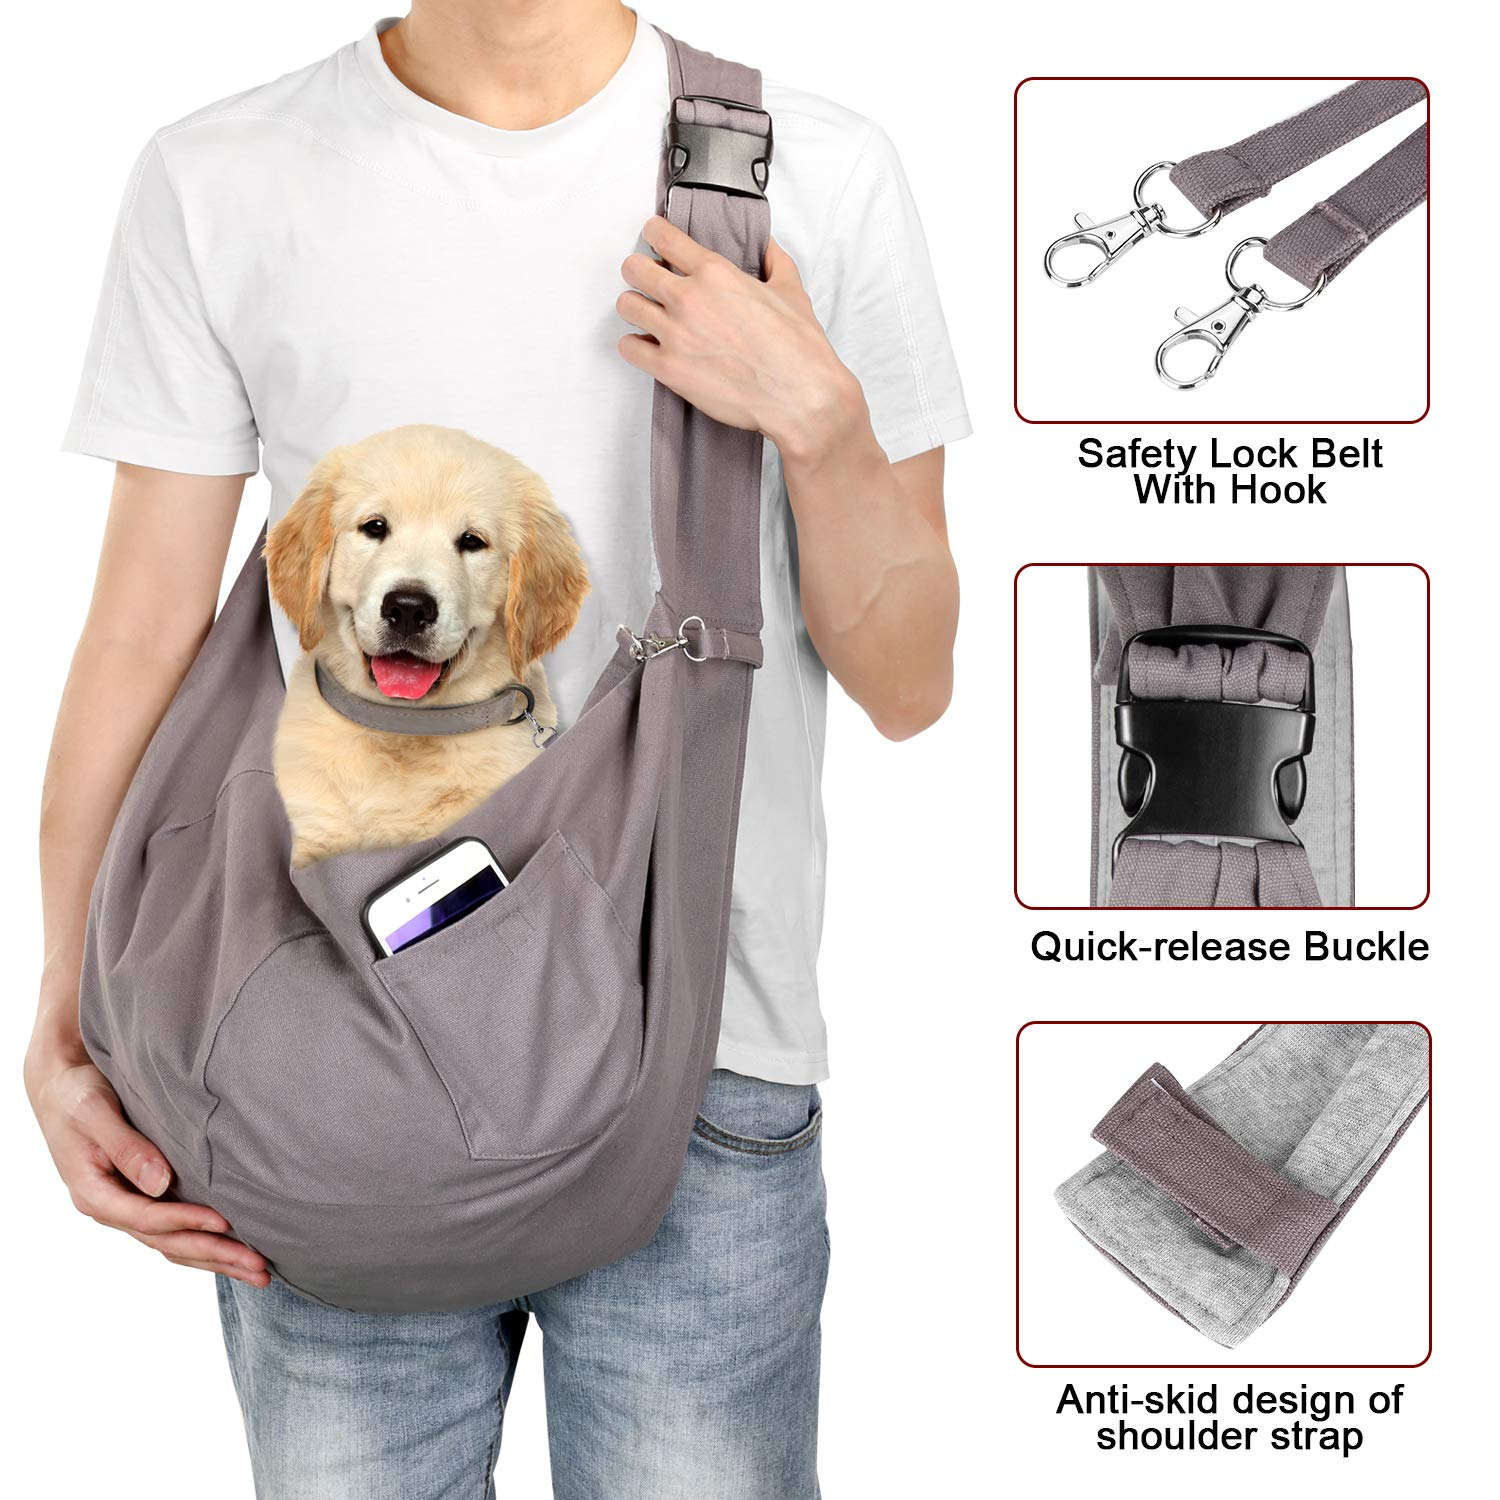 OWNPETS Pet Sling Carrier, Pet Sling Carrier Bag Safe,Fit 15~22lb Cats&Dogs, Comfortable, Adjustable, Perfect for Daily Walk, Outdoor Activity and Weekend Adventure by OWNPETS